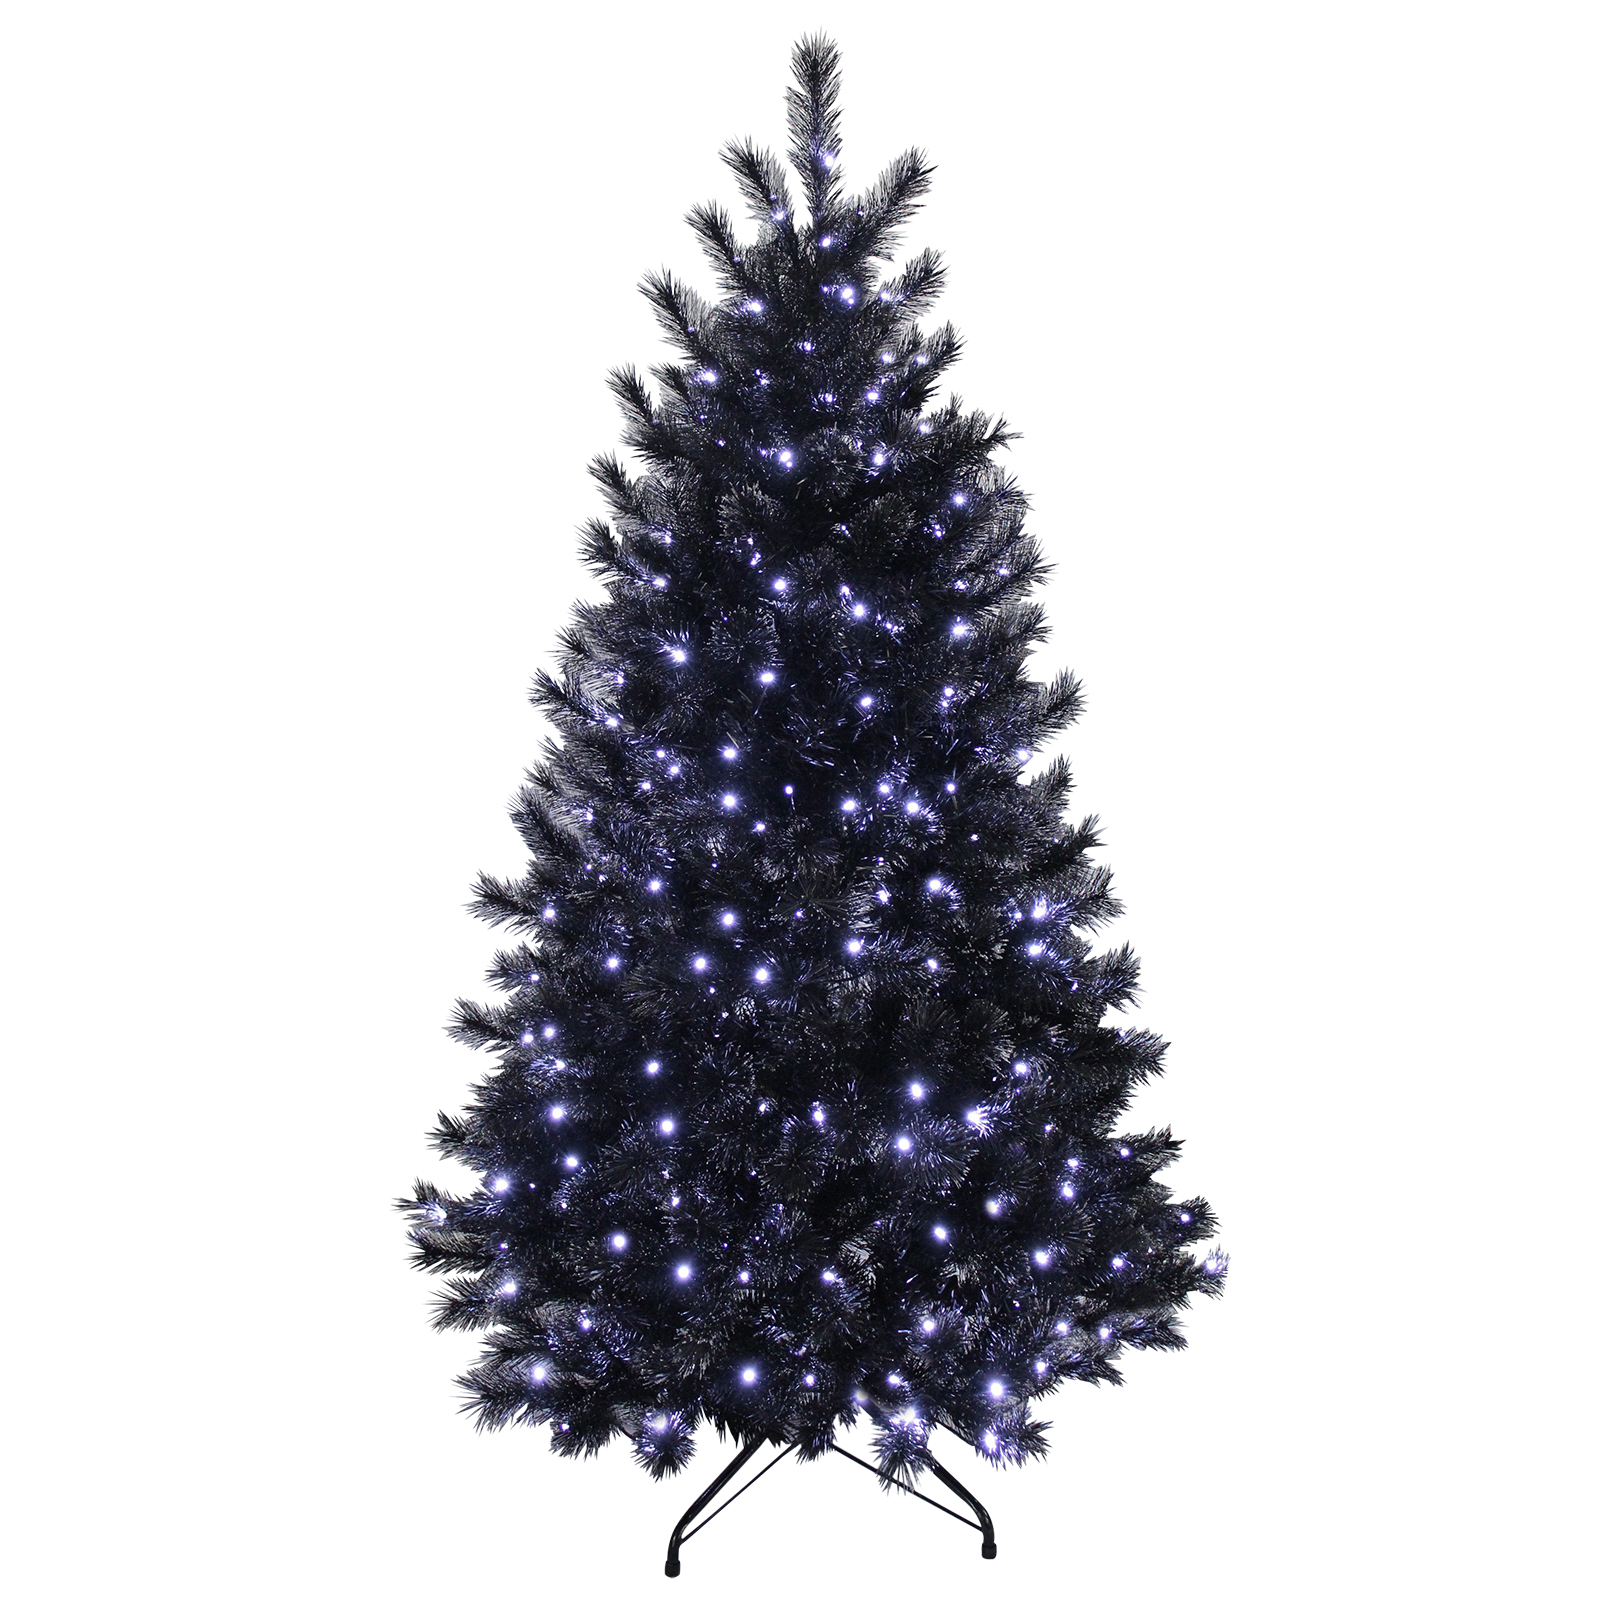 15 Tree Of Lights Tree C7: 7ft Black Glitter Pine Artificial Prelit Bright White